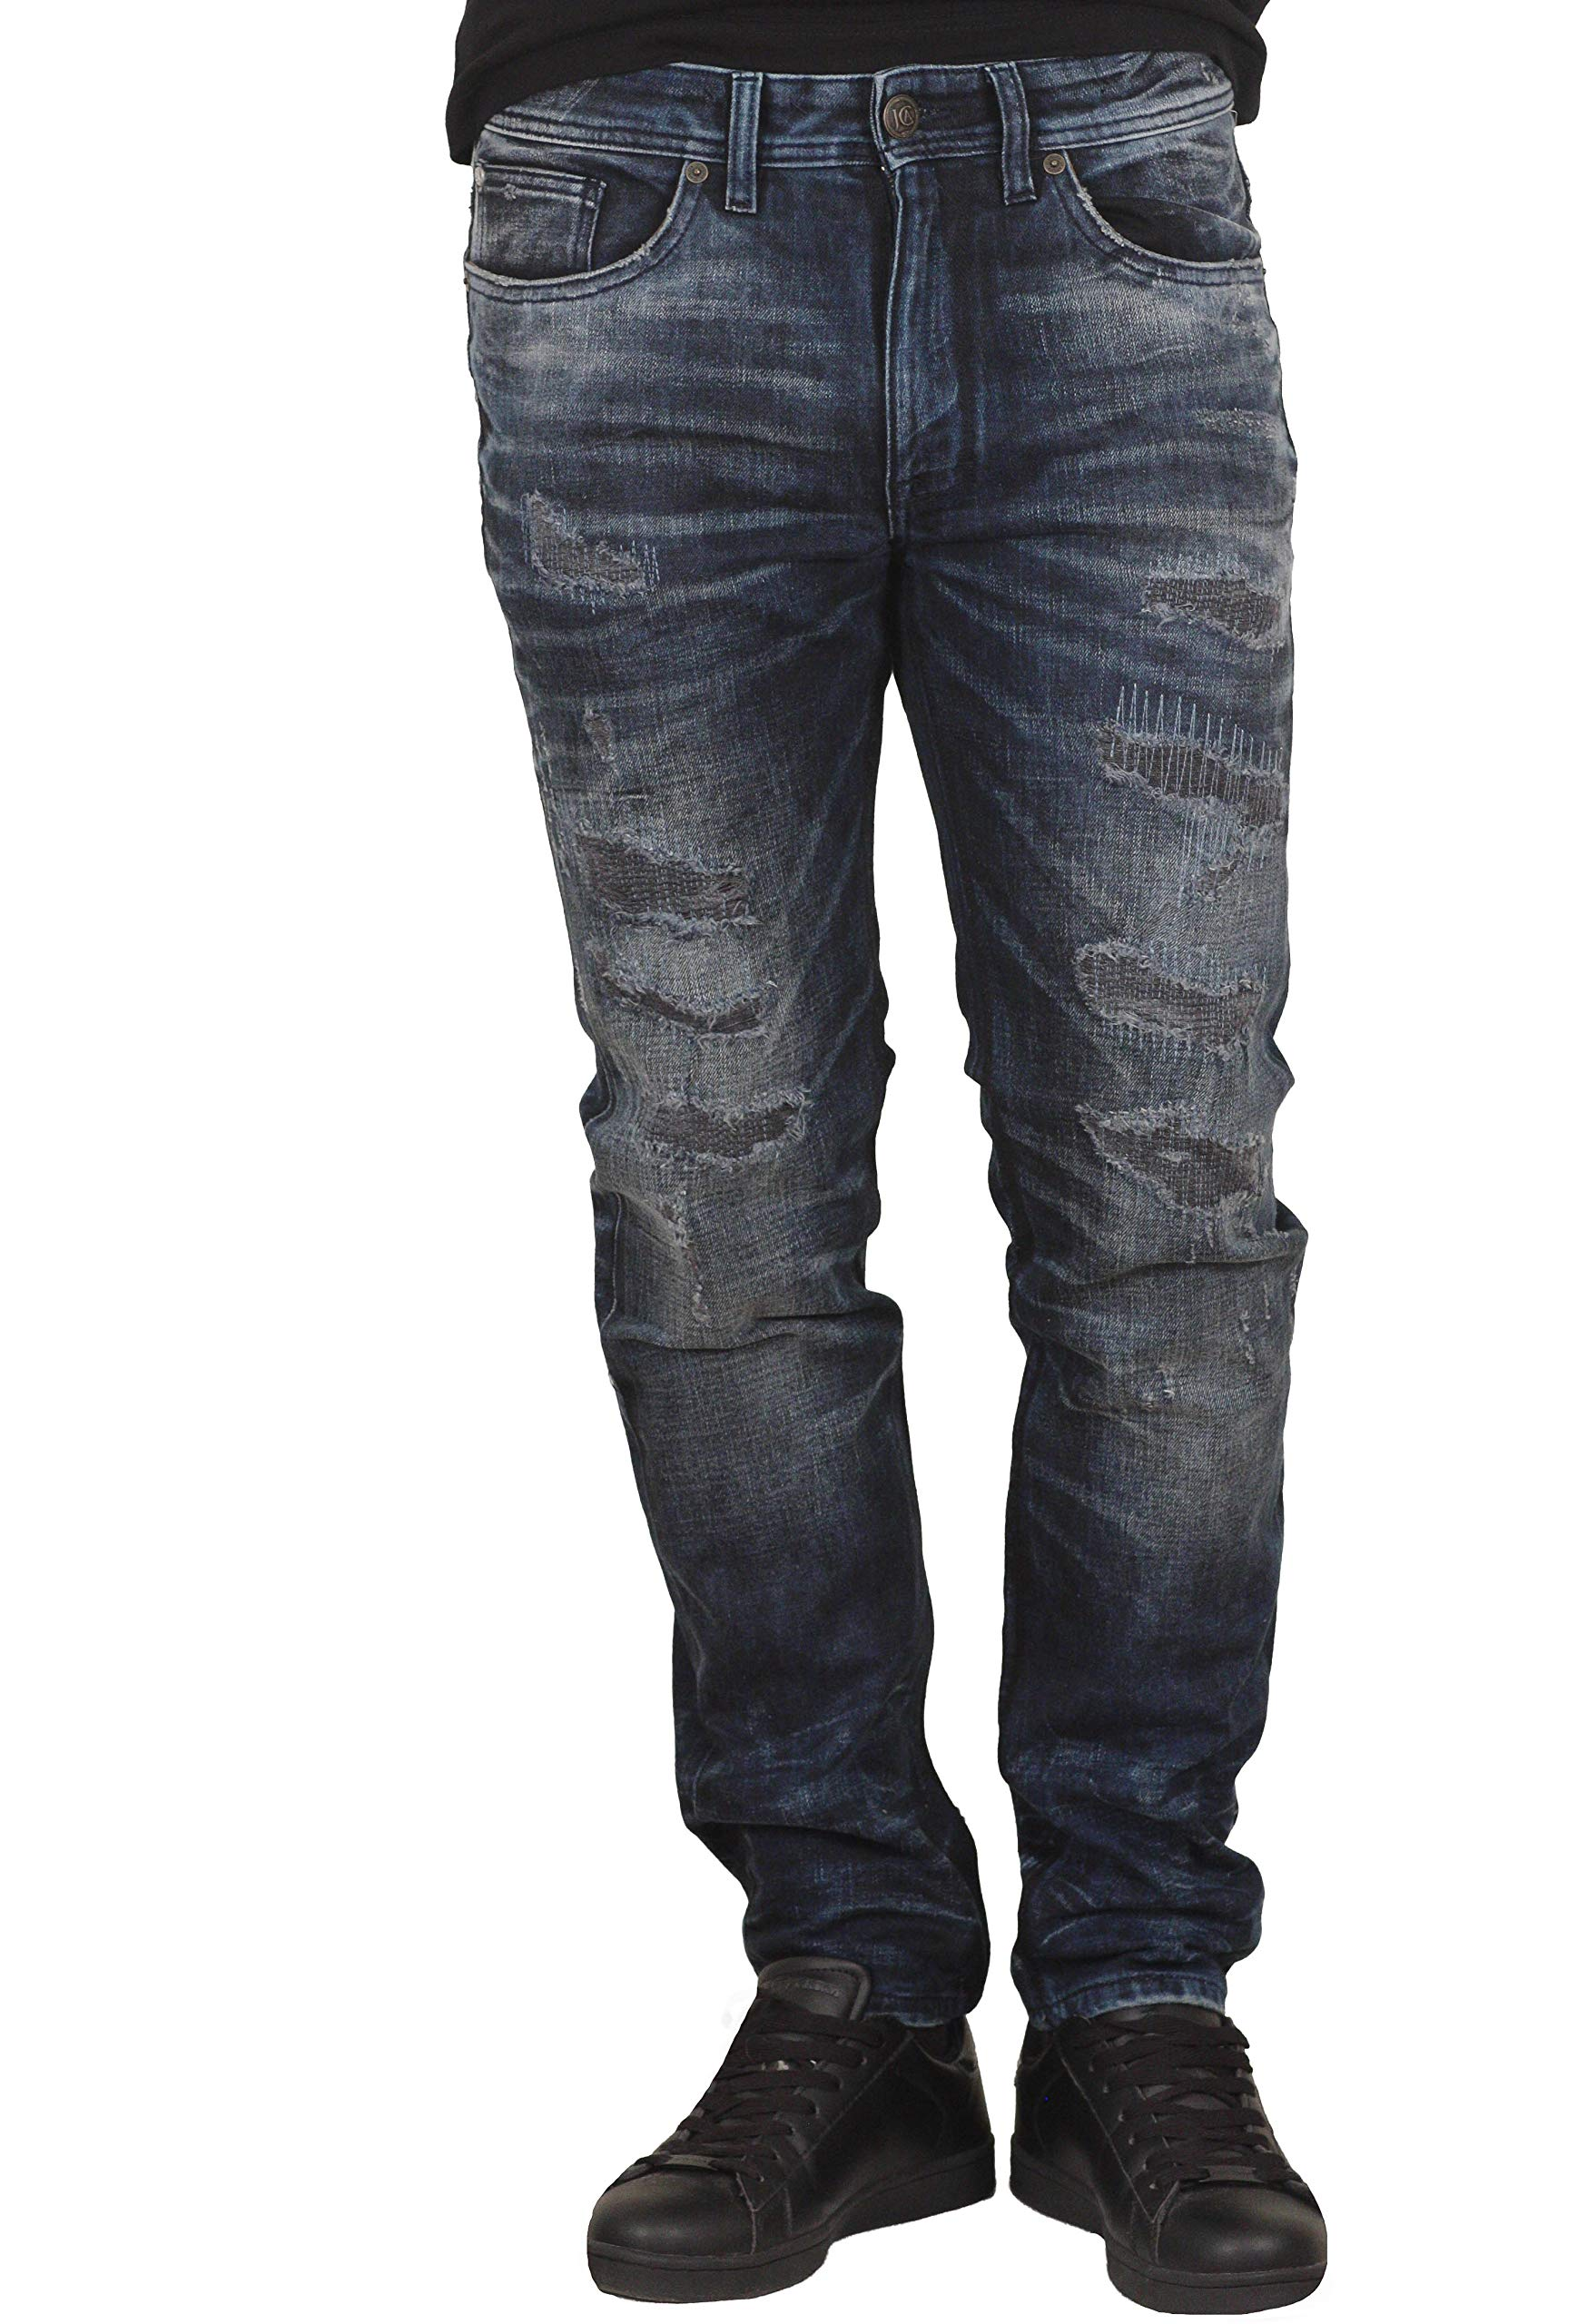 JC Atelier Premium Distressed Jeans from Jordan Craig by JC Atelier